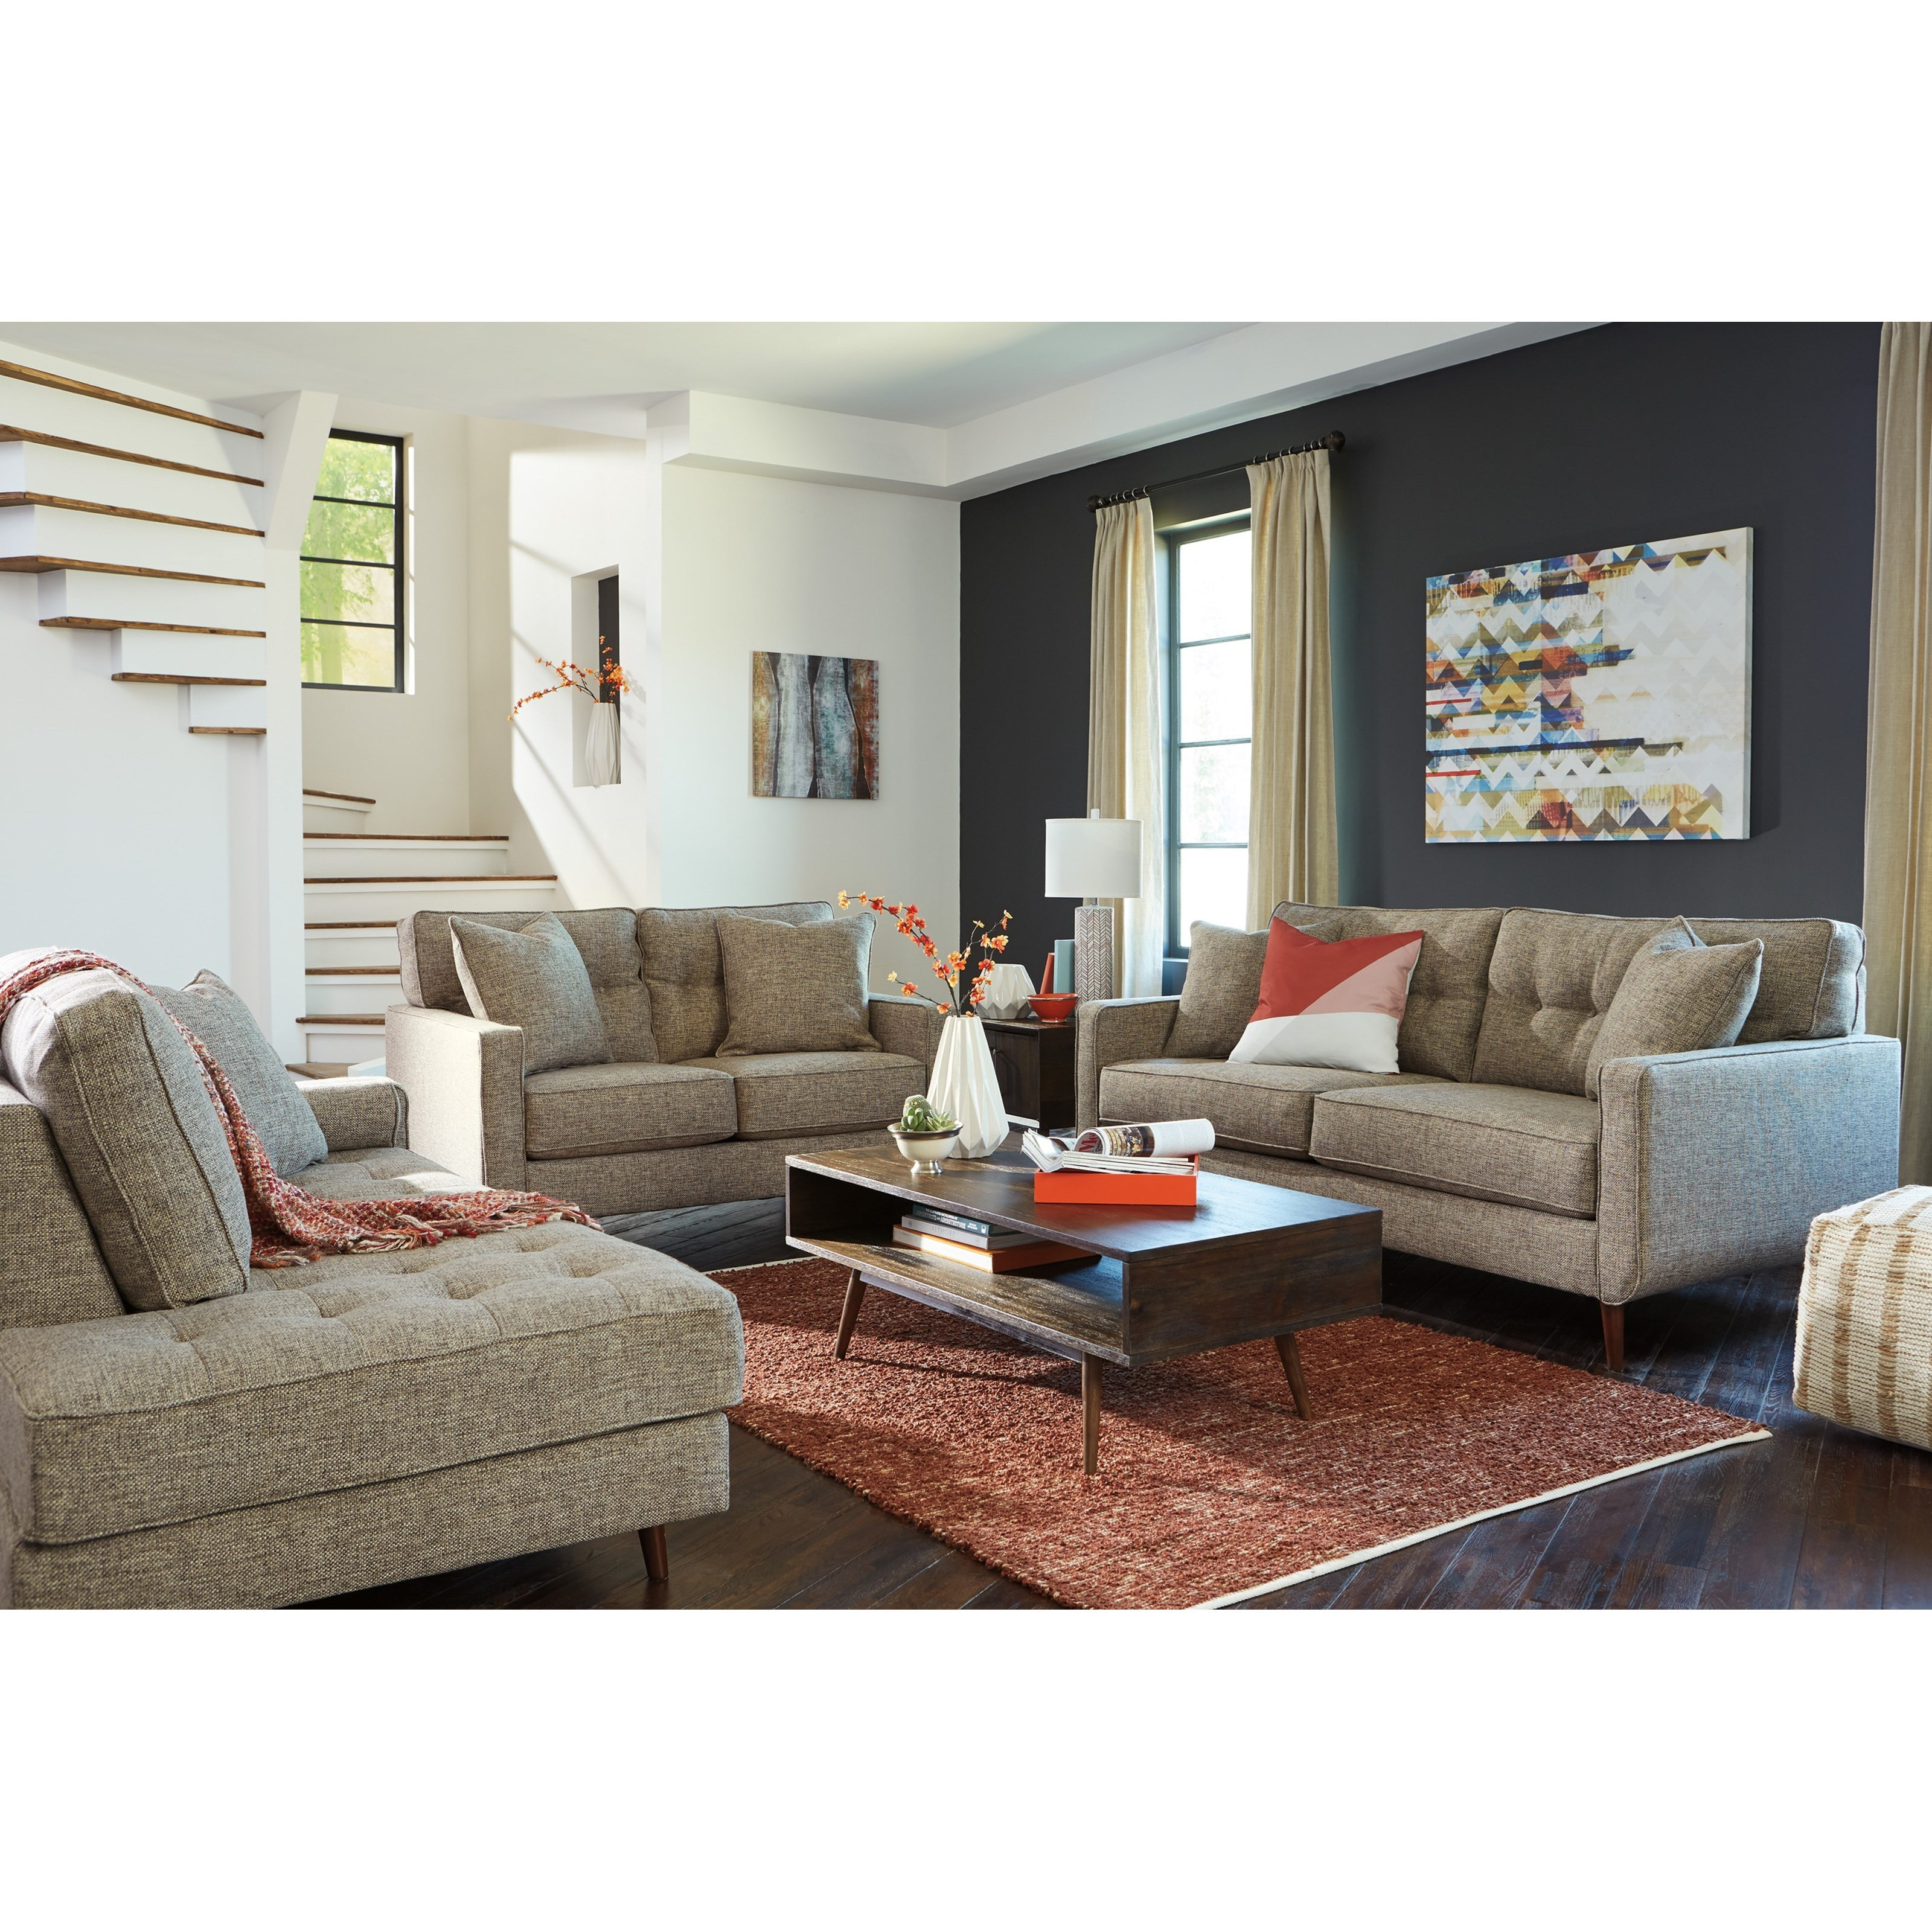 Dahra Stationary Living Room Group by Benchcraft at Value City Furniture